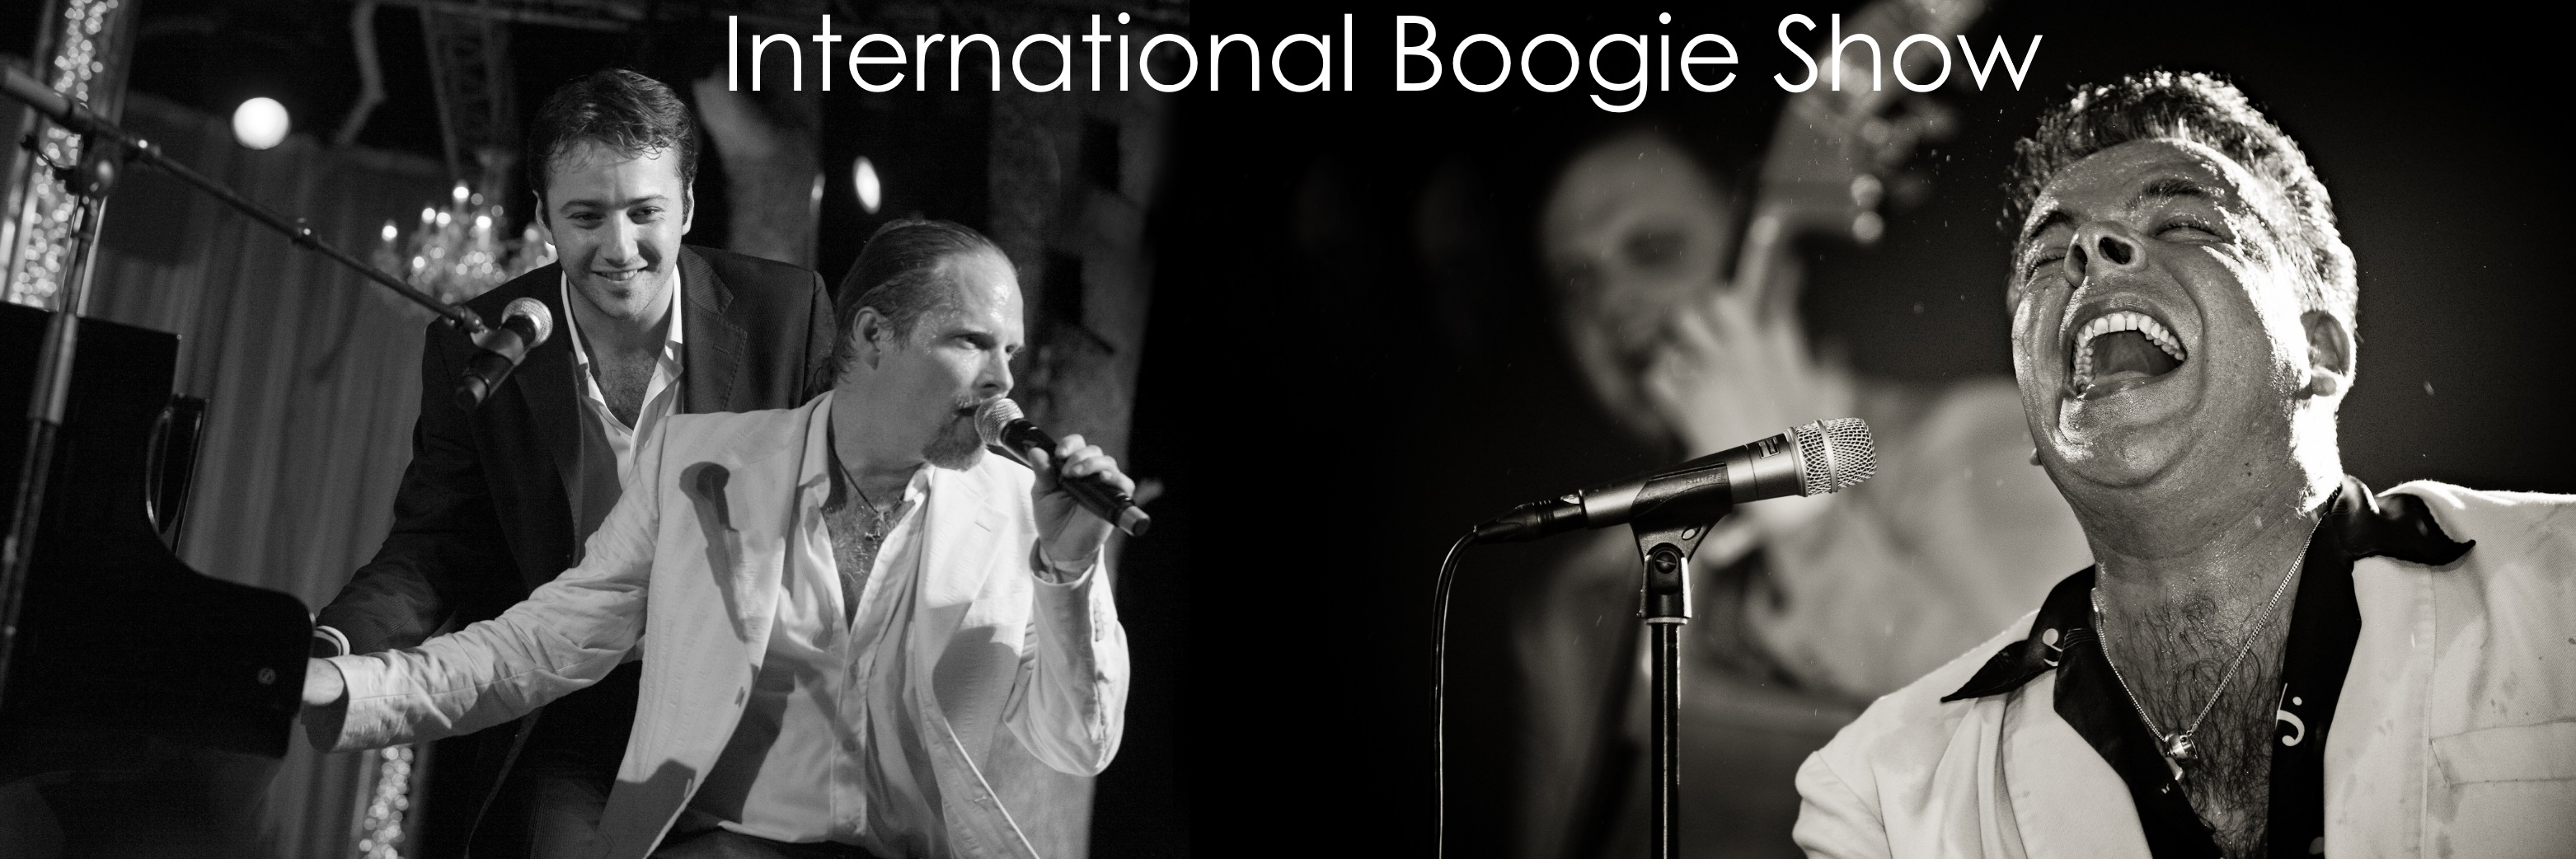 International Boogie Show.jpg